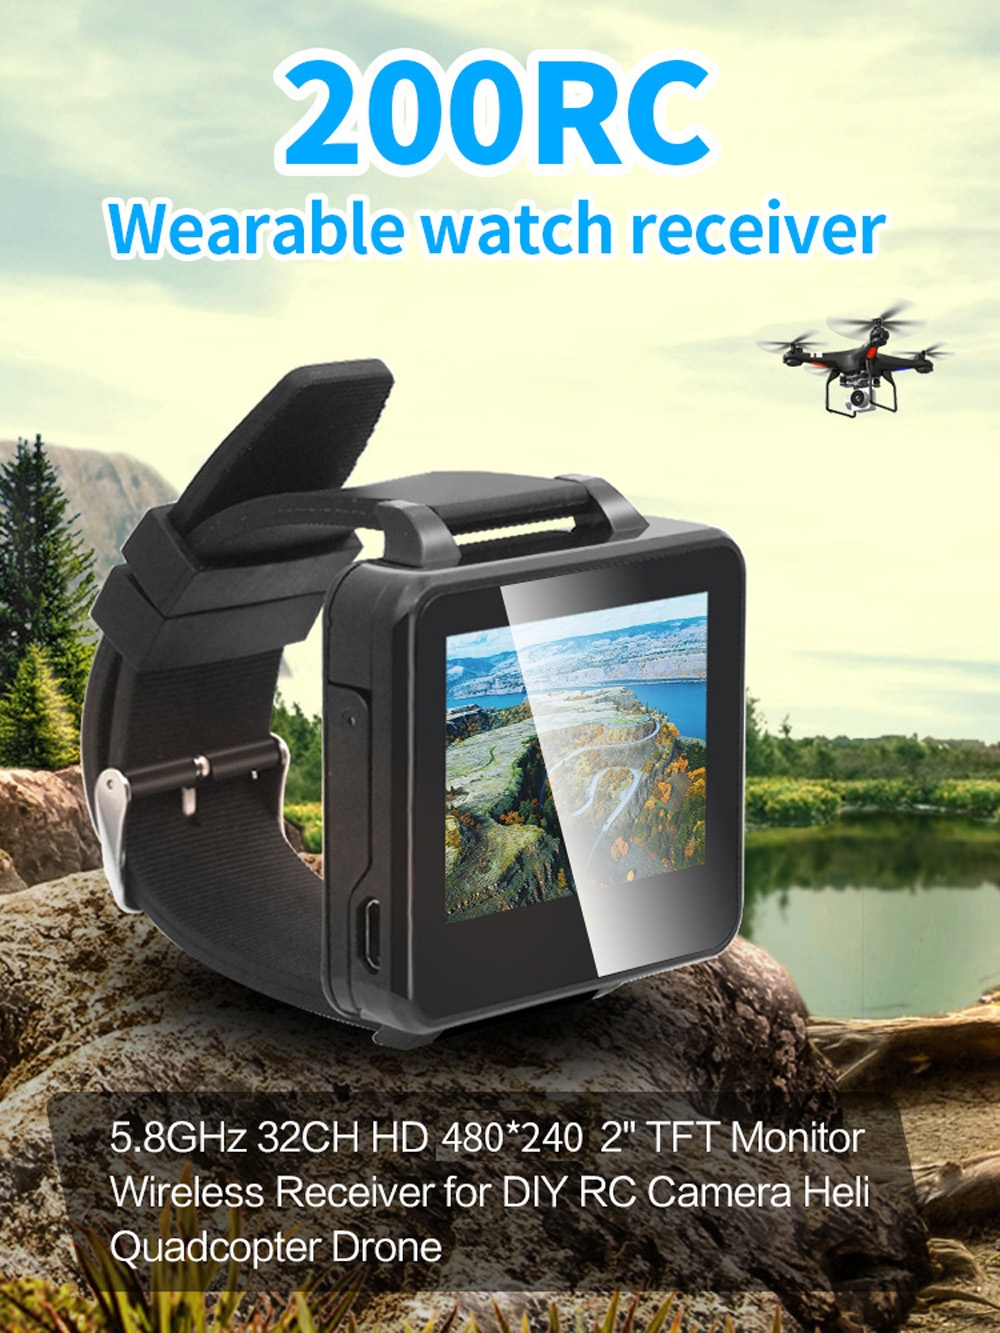 "200RC FPV Wearable Watch 2"" LCD 5.8G 40Ch FPV Monitor Wireless Receiver Watch LCD Display for FPV RC Drone"